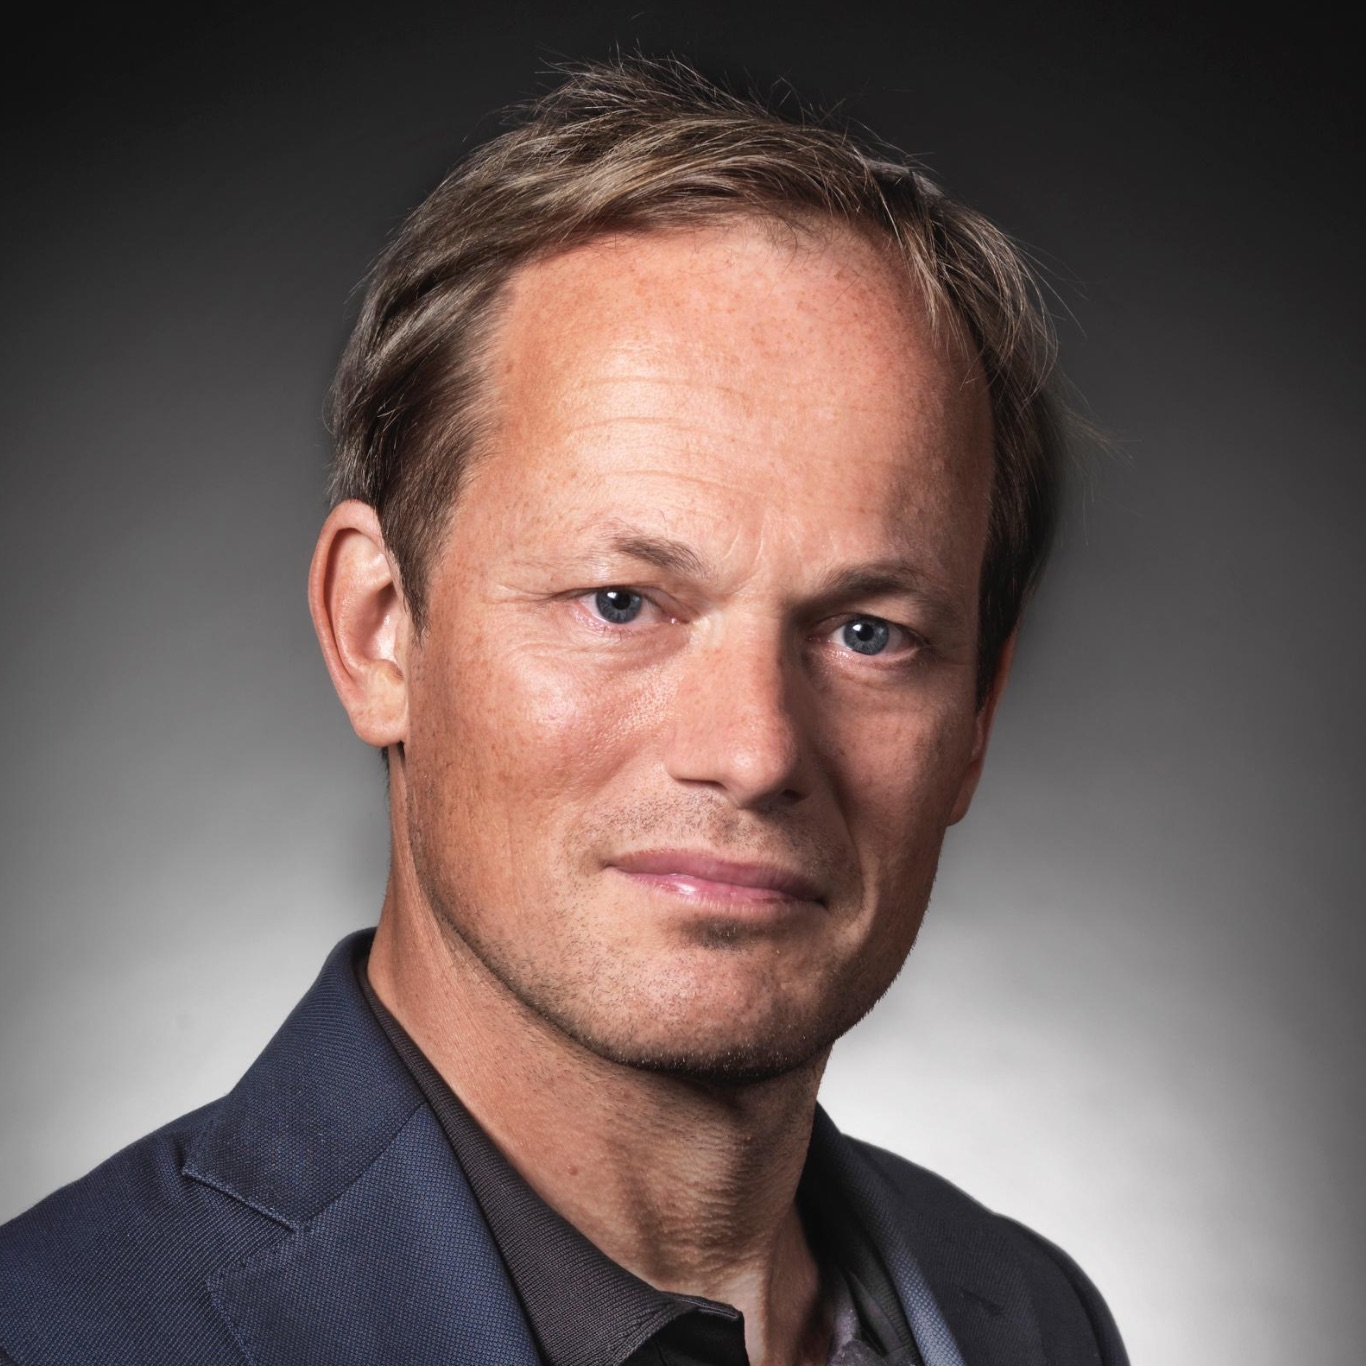 Exponential Innovation with Yuri Van Geest